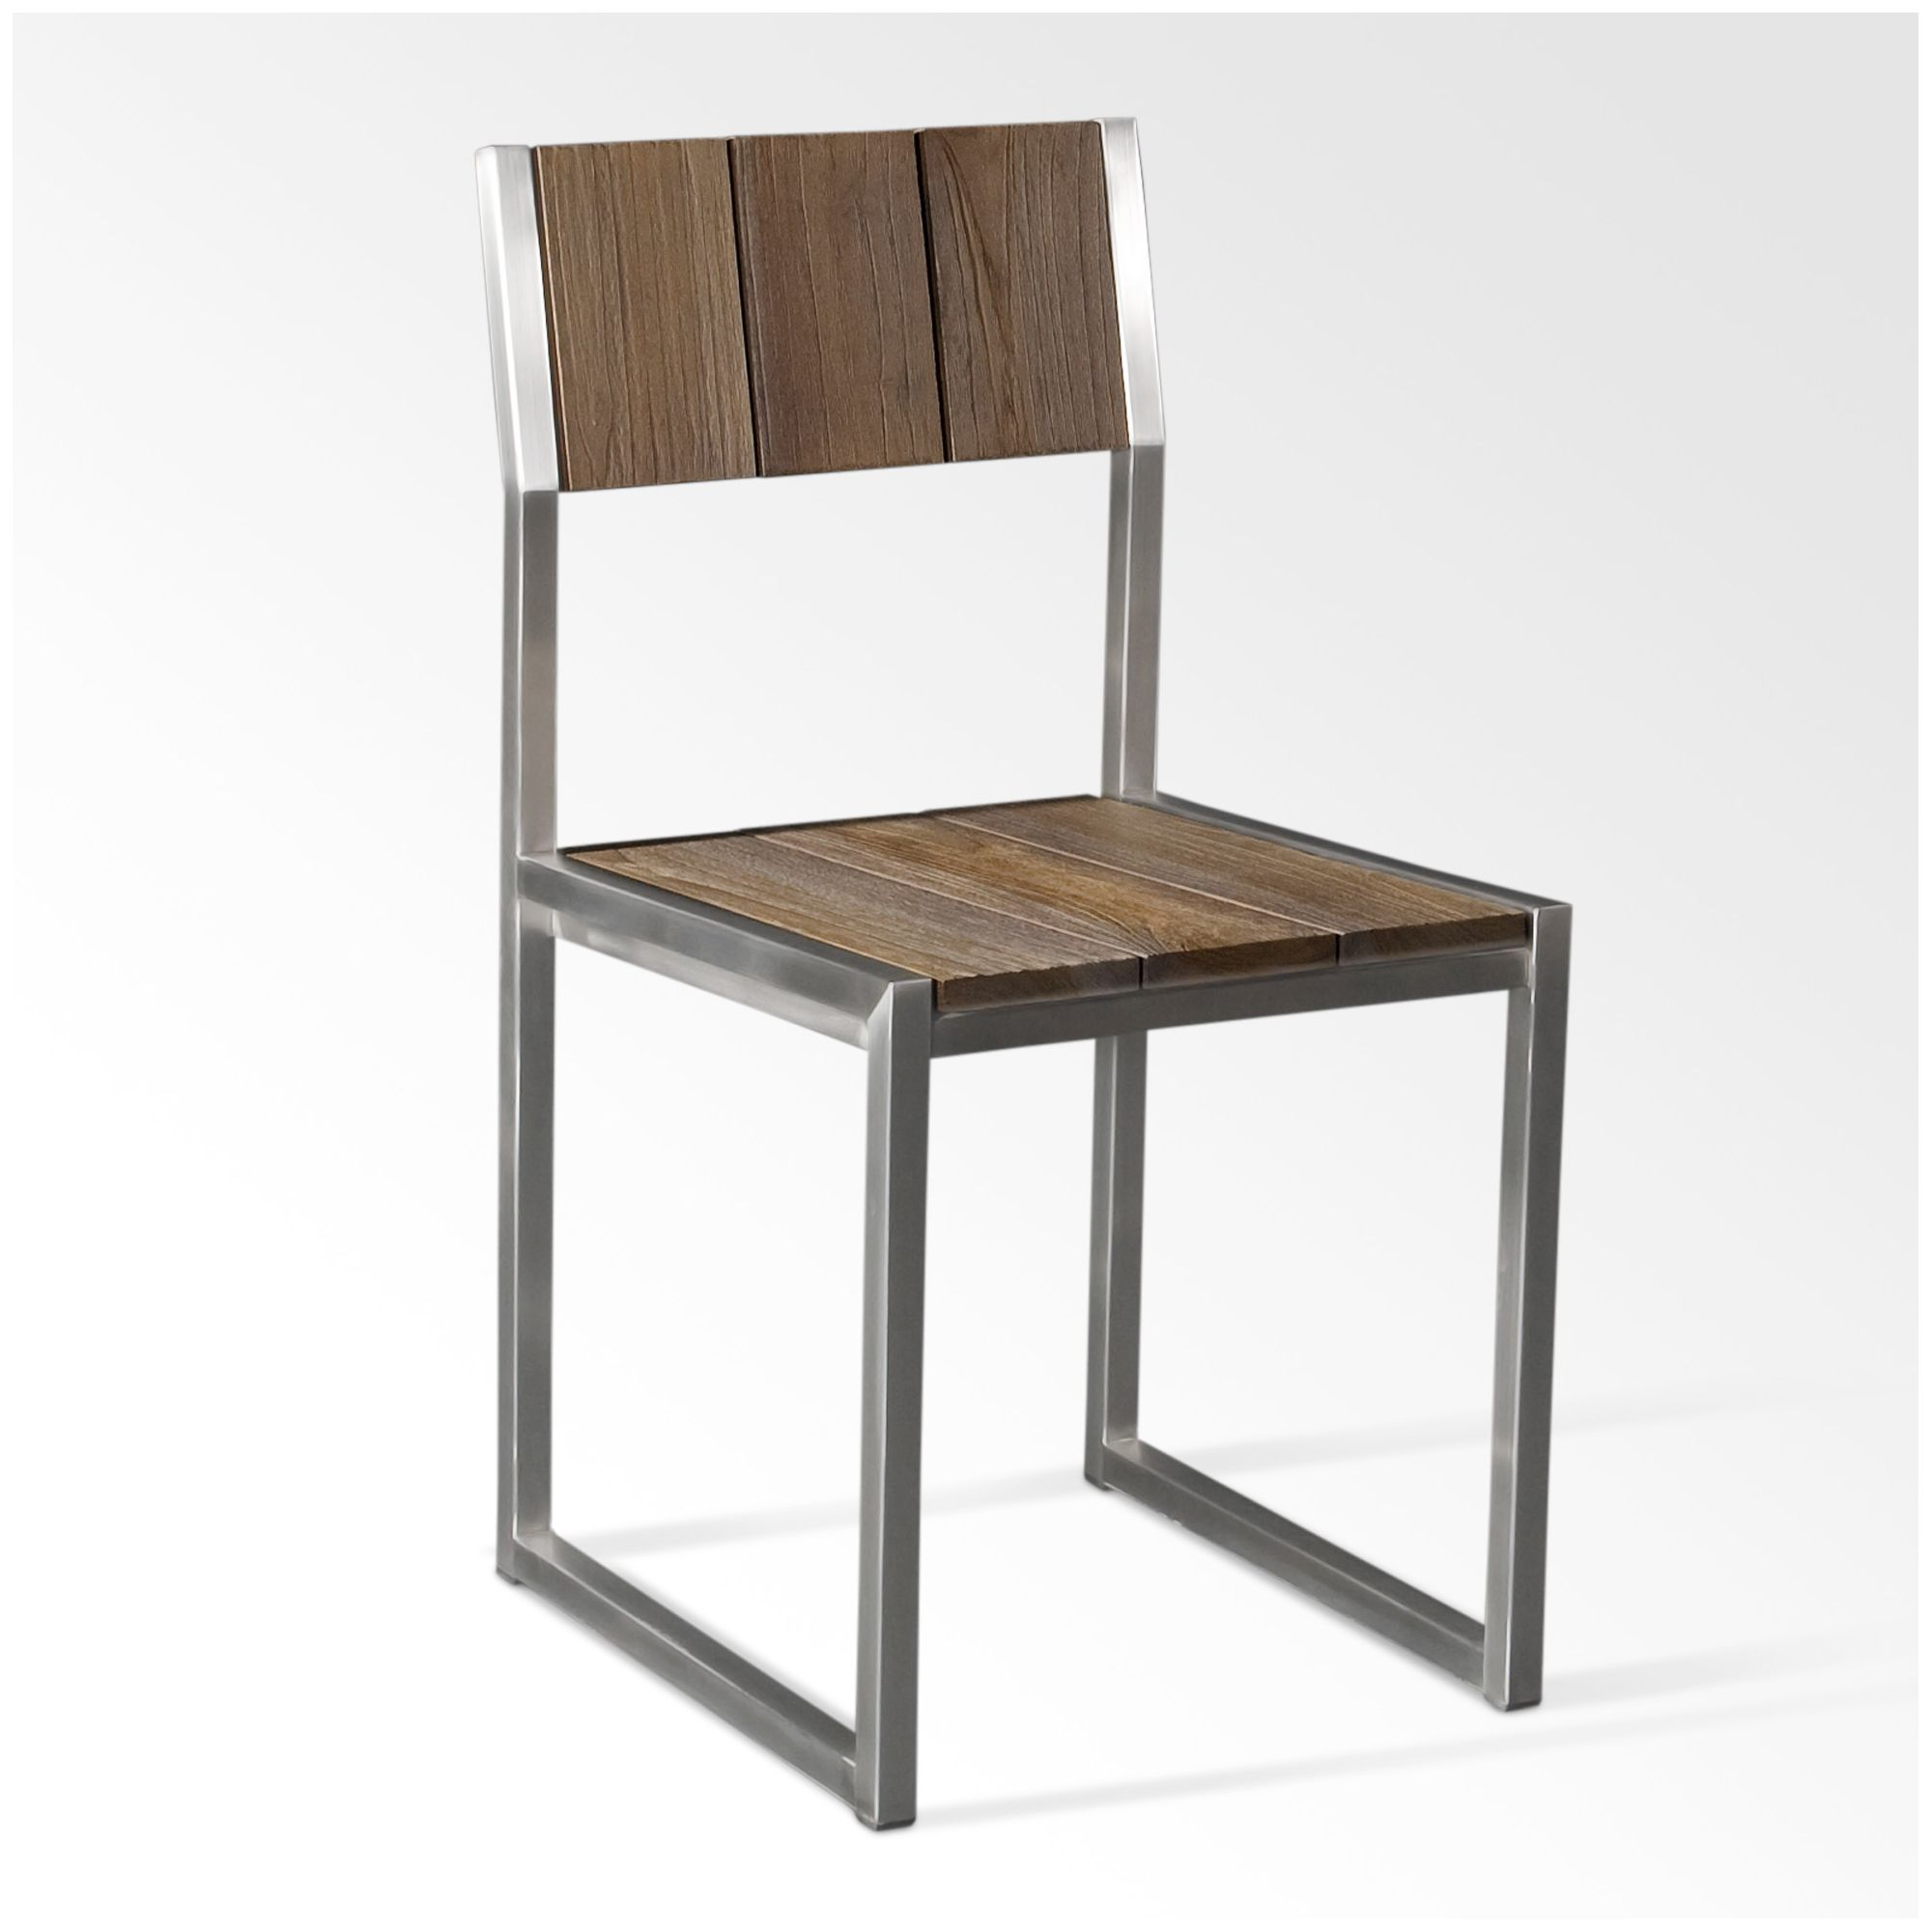 Oceans Apart Arus Garden Chair in Grey